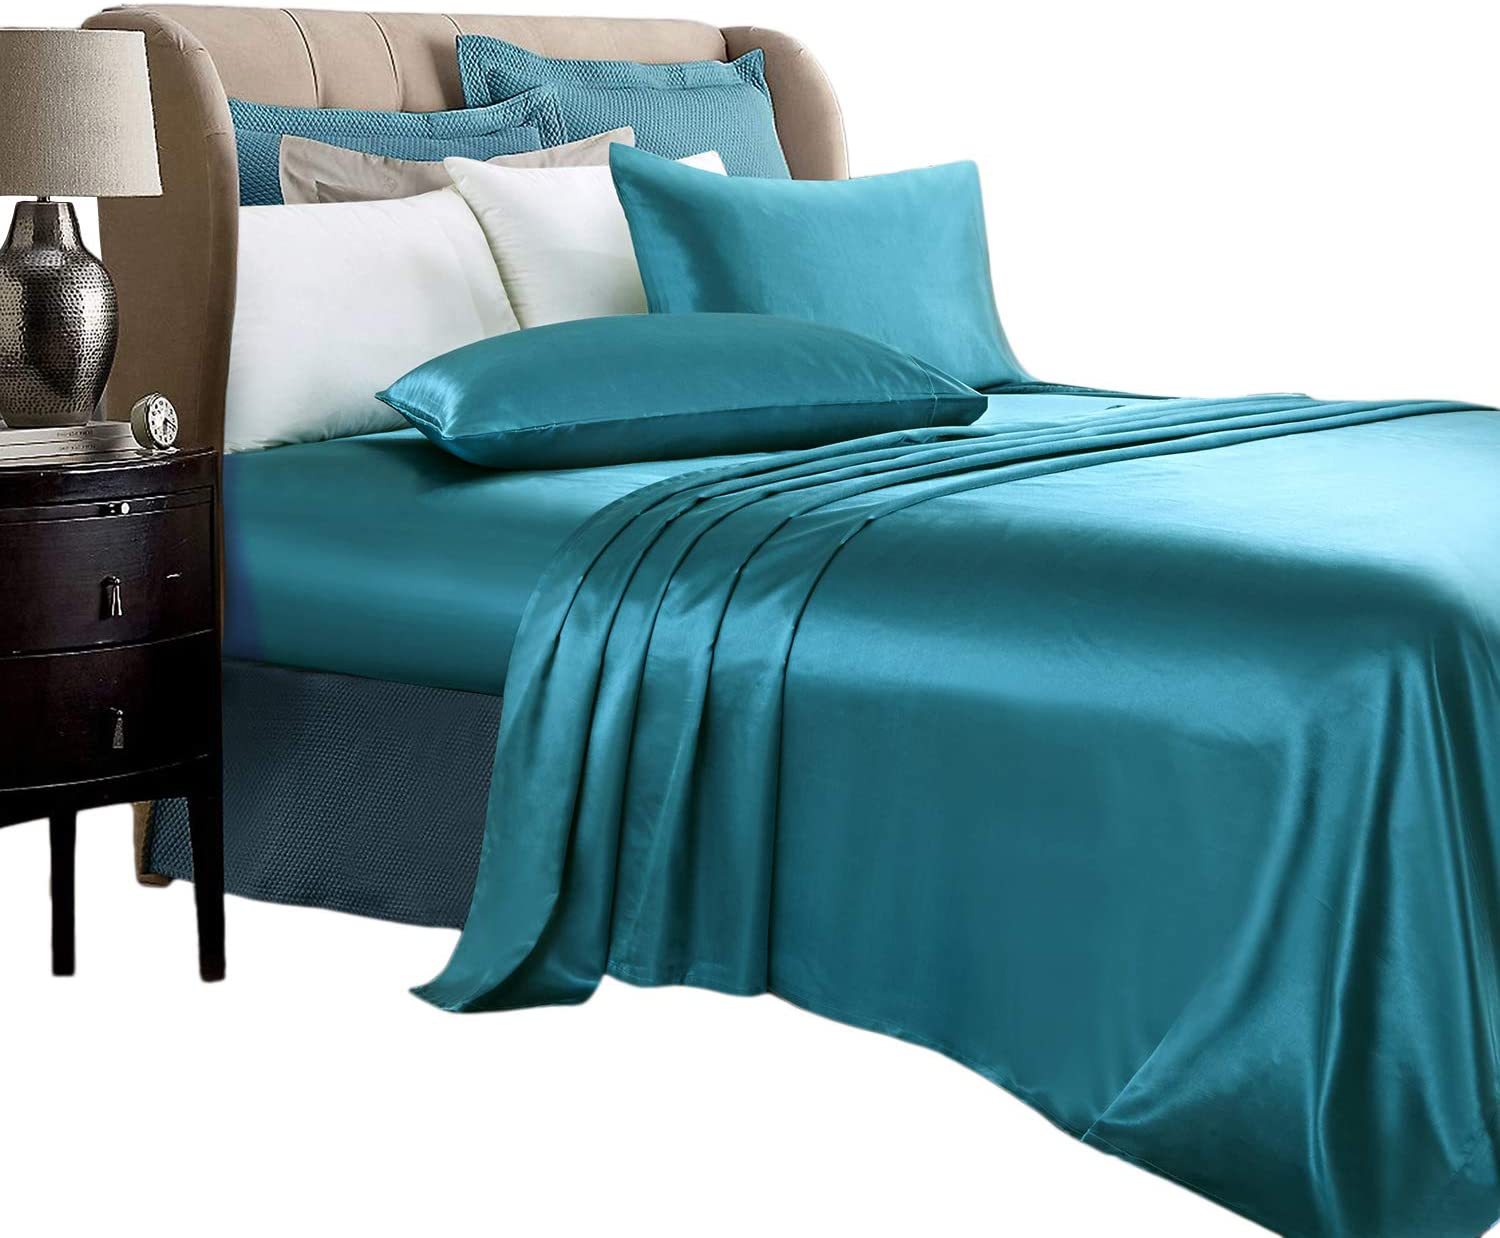 EHP Super Soft /& Silky Satin Fitted Sheet with 14 Inches Deep Pocket